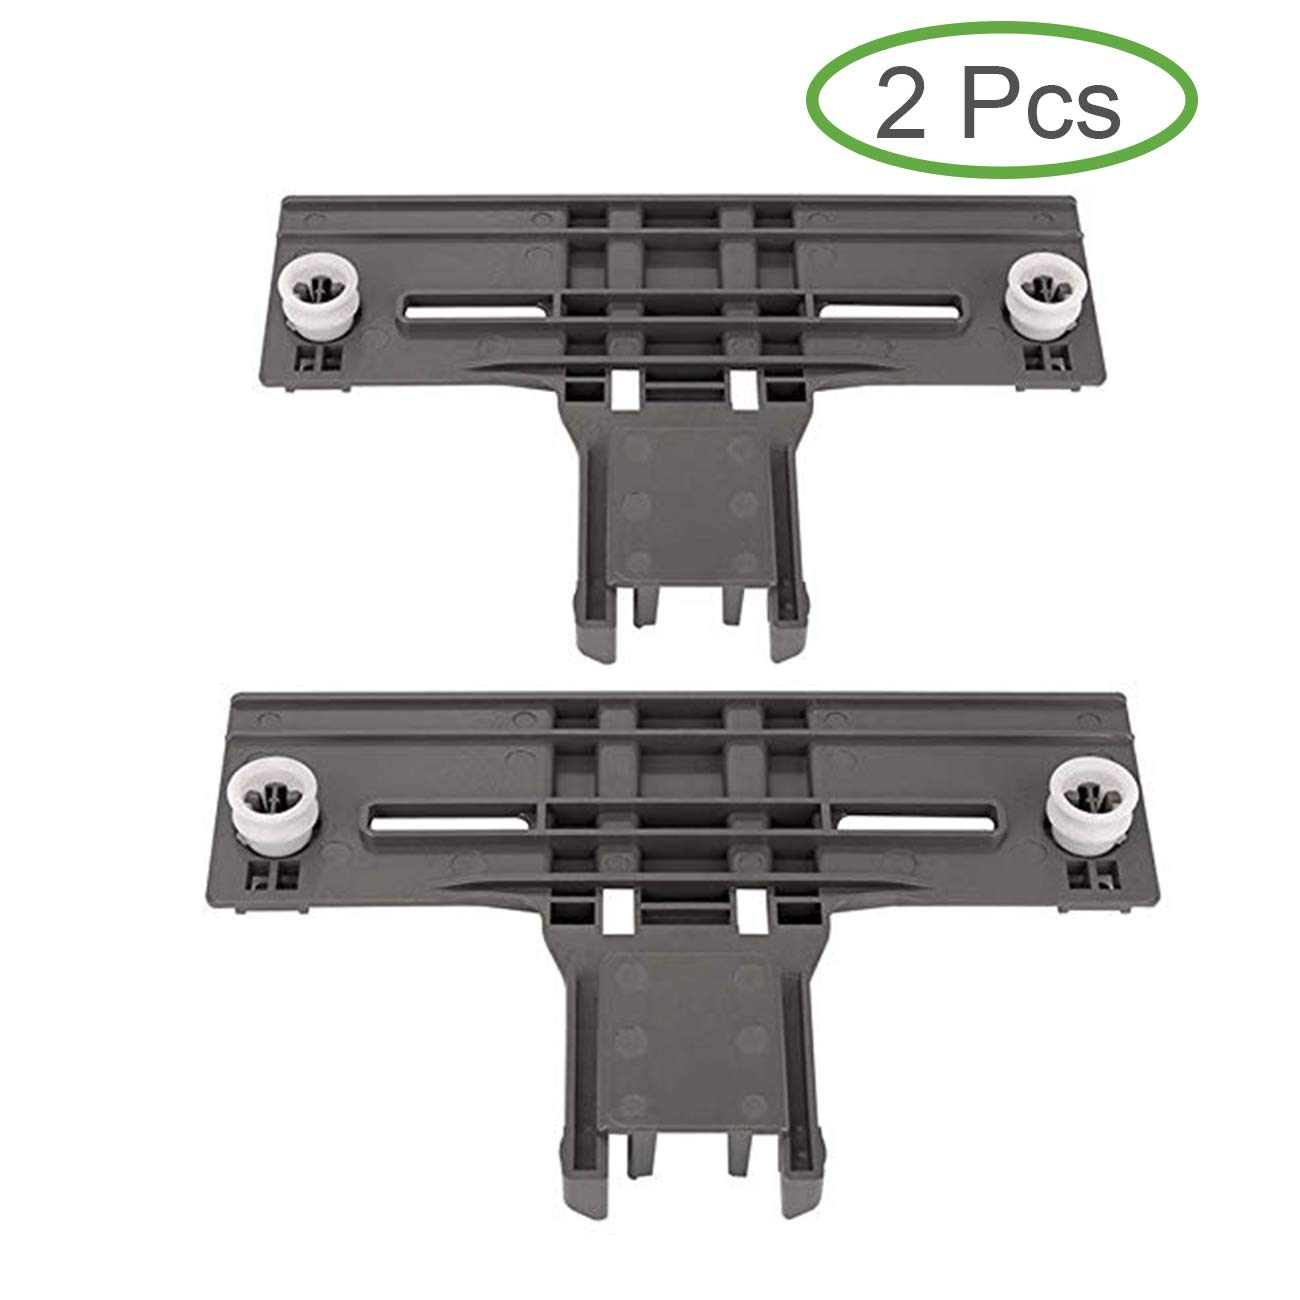 W10350376 Dishwasher Upper Top Rack Adjuster Replacement part for Kenmore Kitchenaid Sears W10712394 AP5272176 PS3497383(Pack of 2)